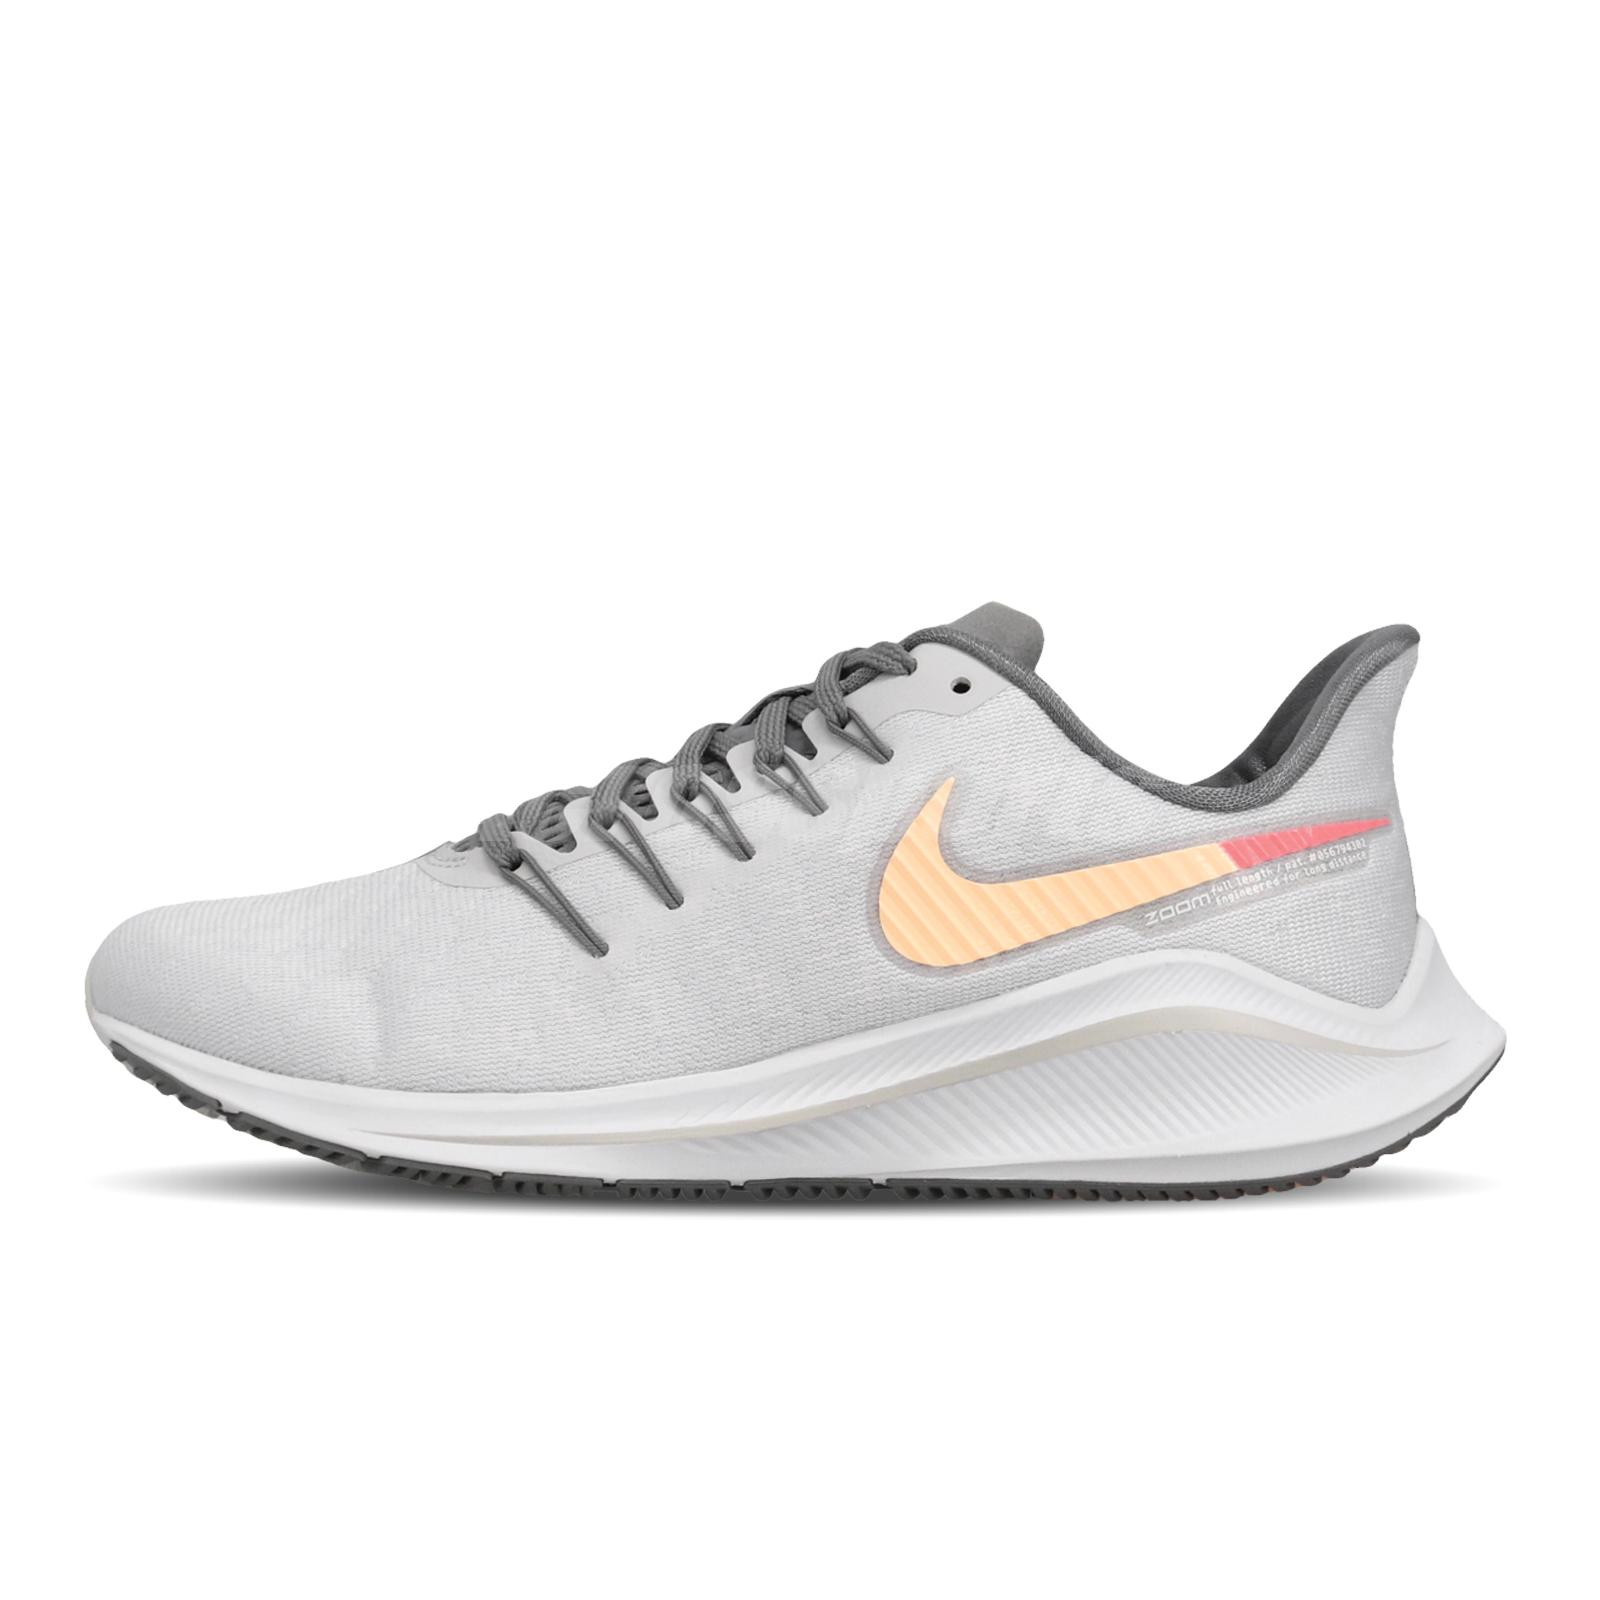 Details about Nike Wmns Air Zoom Vomero 14 Running Womens Shoes NWOB Platinum AH7858 005